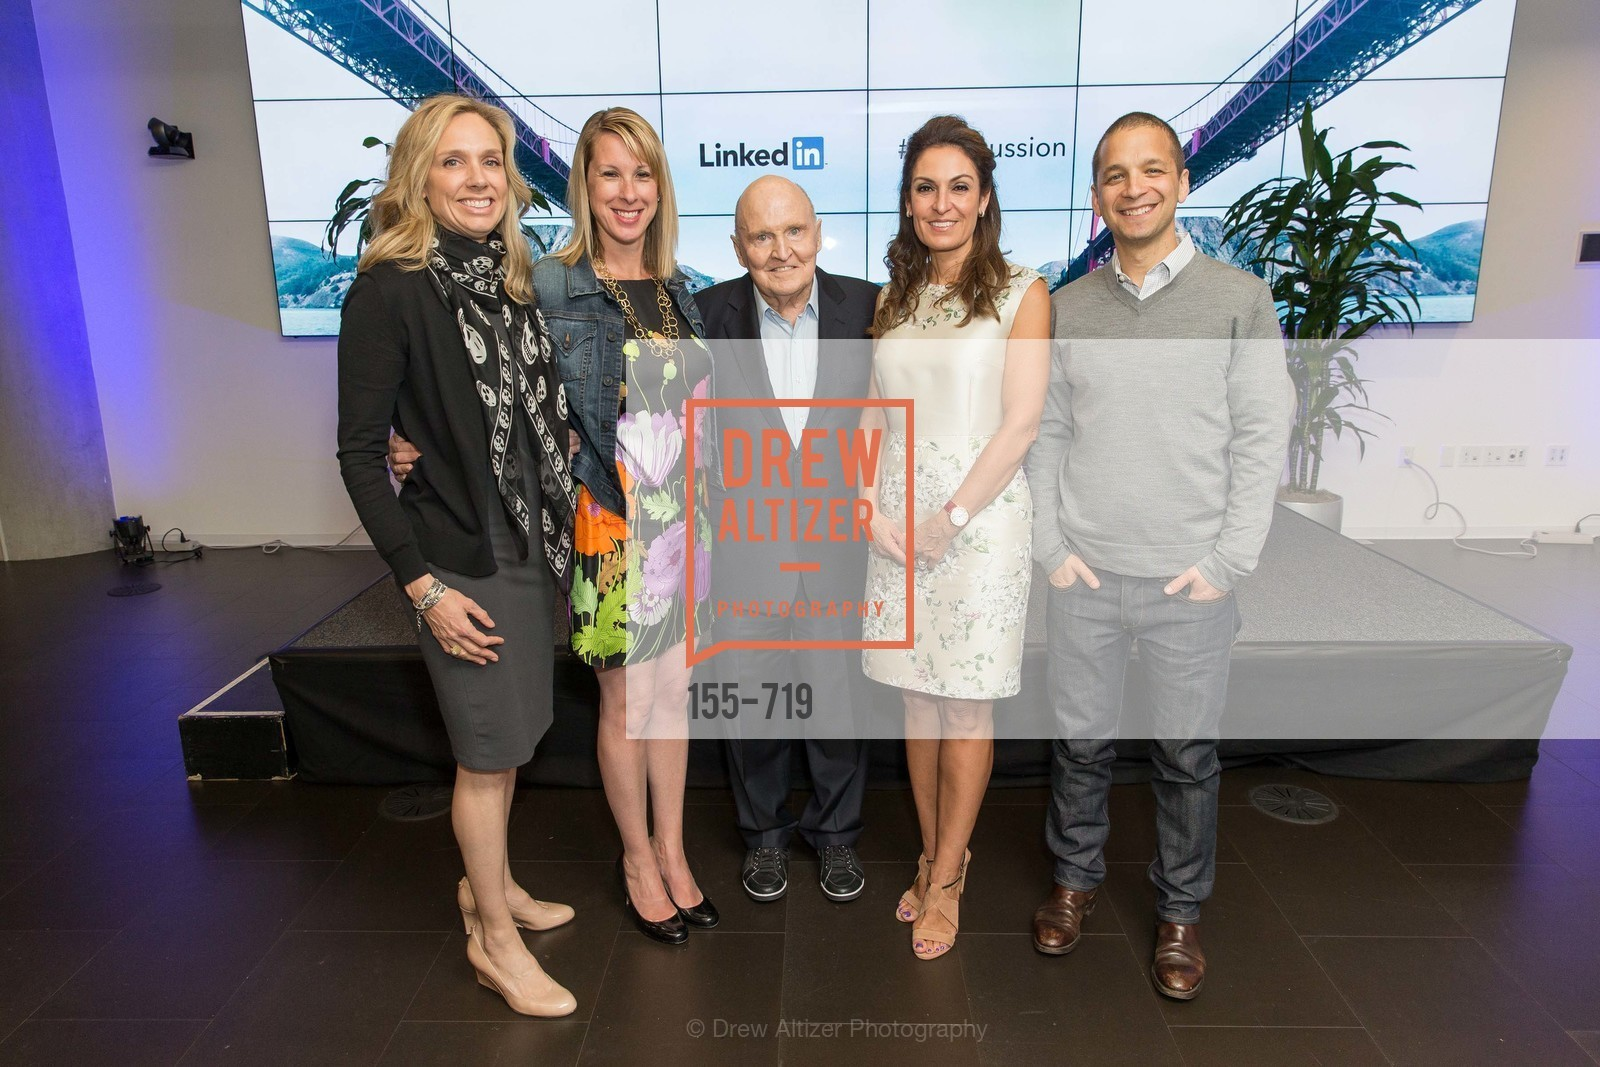 Catherine Fisher, Shannon Stubo, Jack Welch, Suzy Welch, Dan Roth, THE LINKEDIN Discussion Series featuring Jack and Suzy Welch with LinkedIn Executive Editor Dan Roth, US, May 11th, 2015,Drew Altizer, Drew Altizer Photography, full-service agency, private events, San Francisco photographer, photographer california